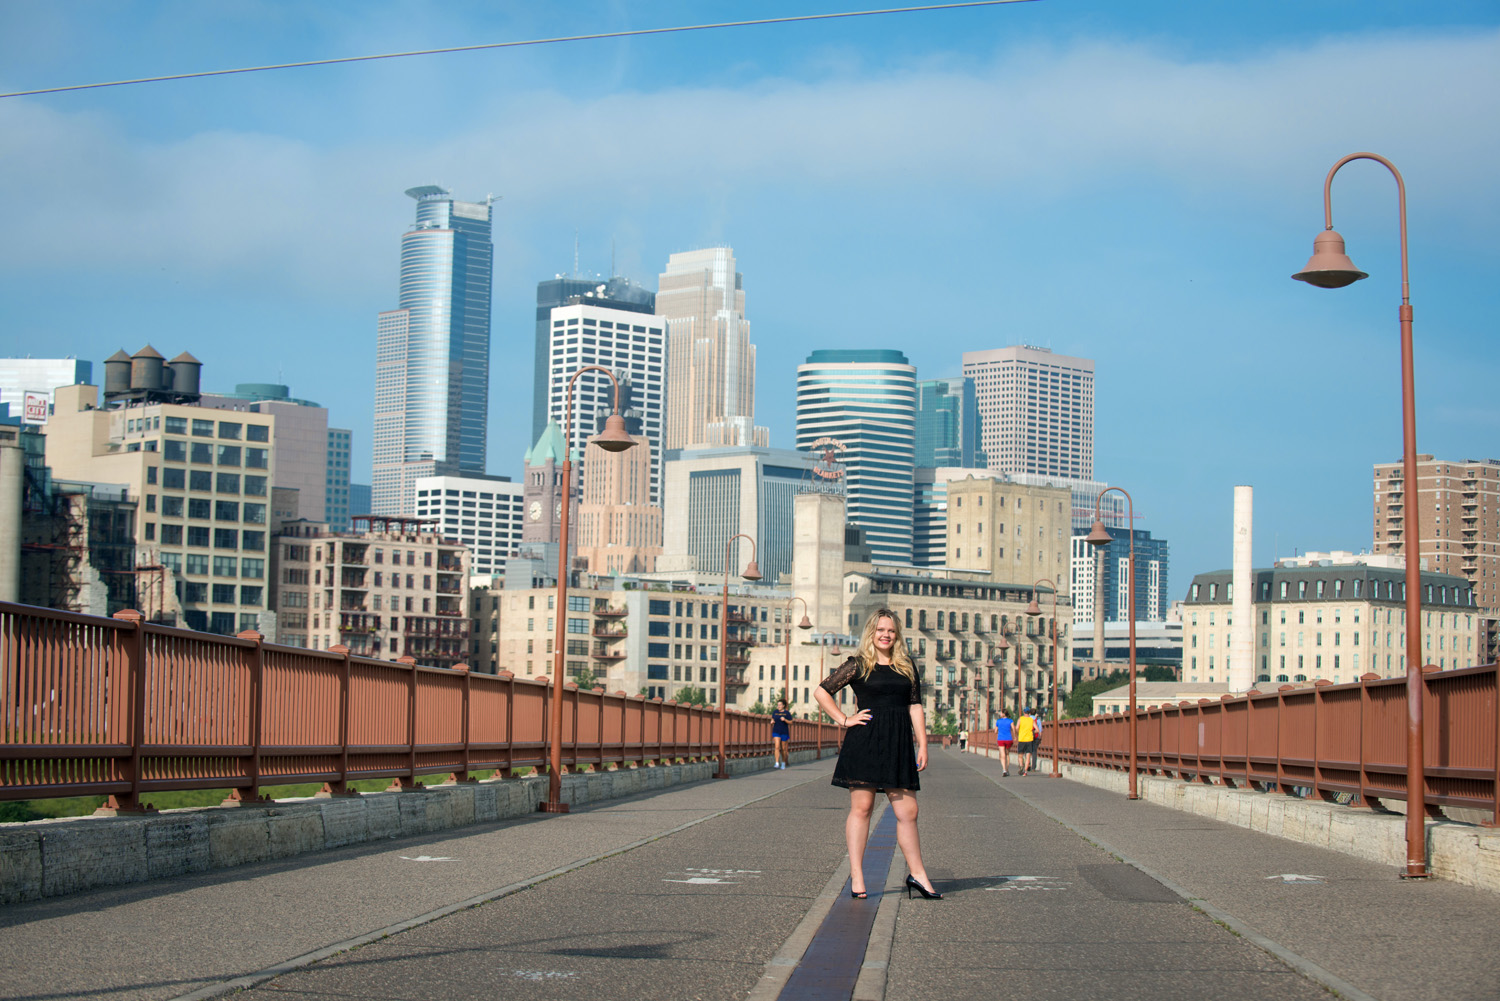 A young woman poses for a portrait in front of the Minneapolis skyline from the vantage point of the Stone Arch Bridge.